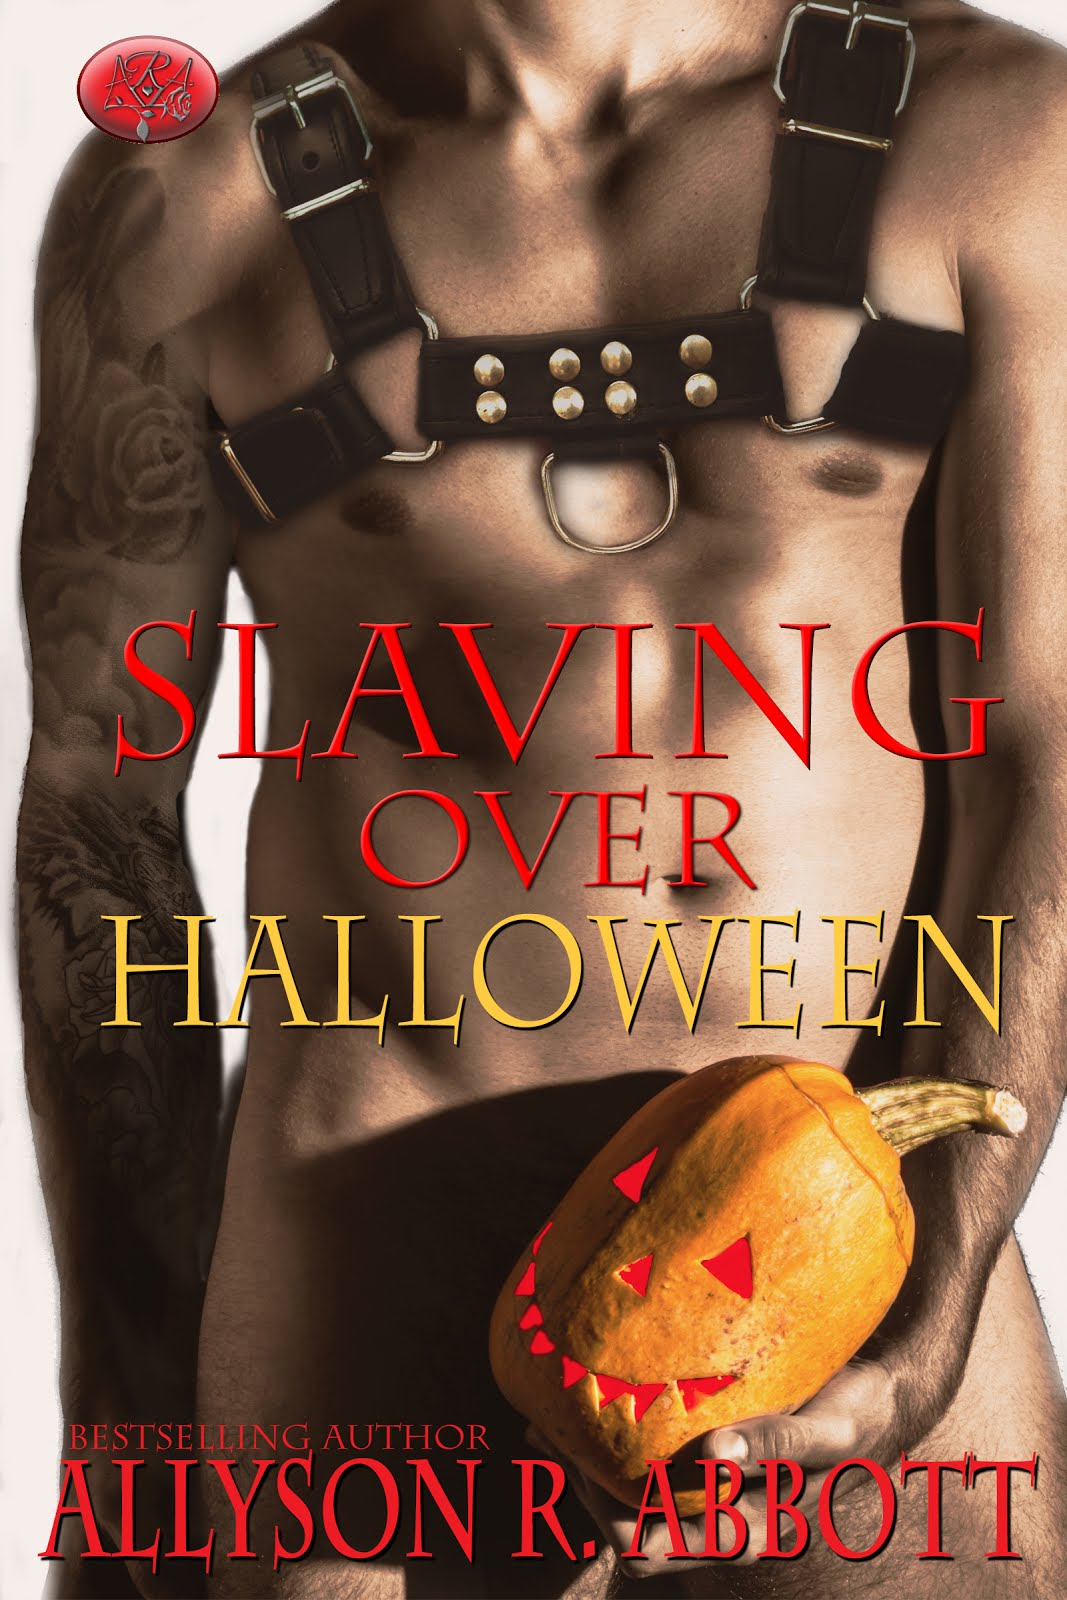 Book 3: Slaving Over Halloween